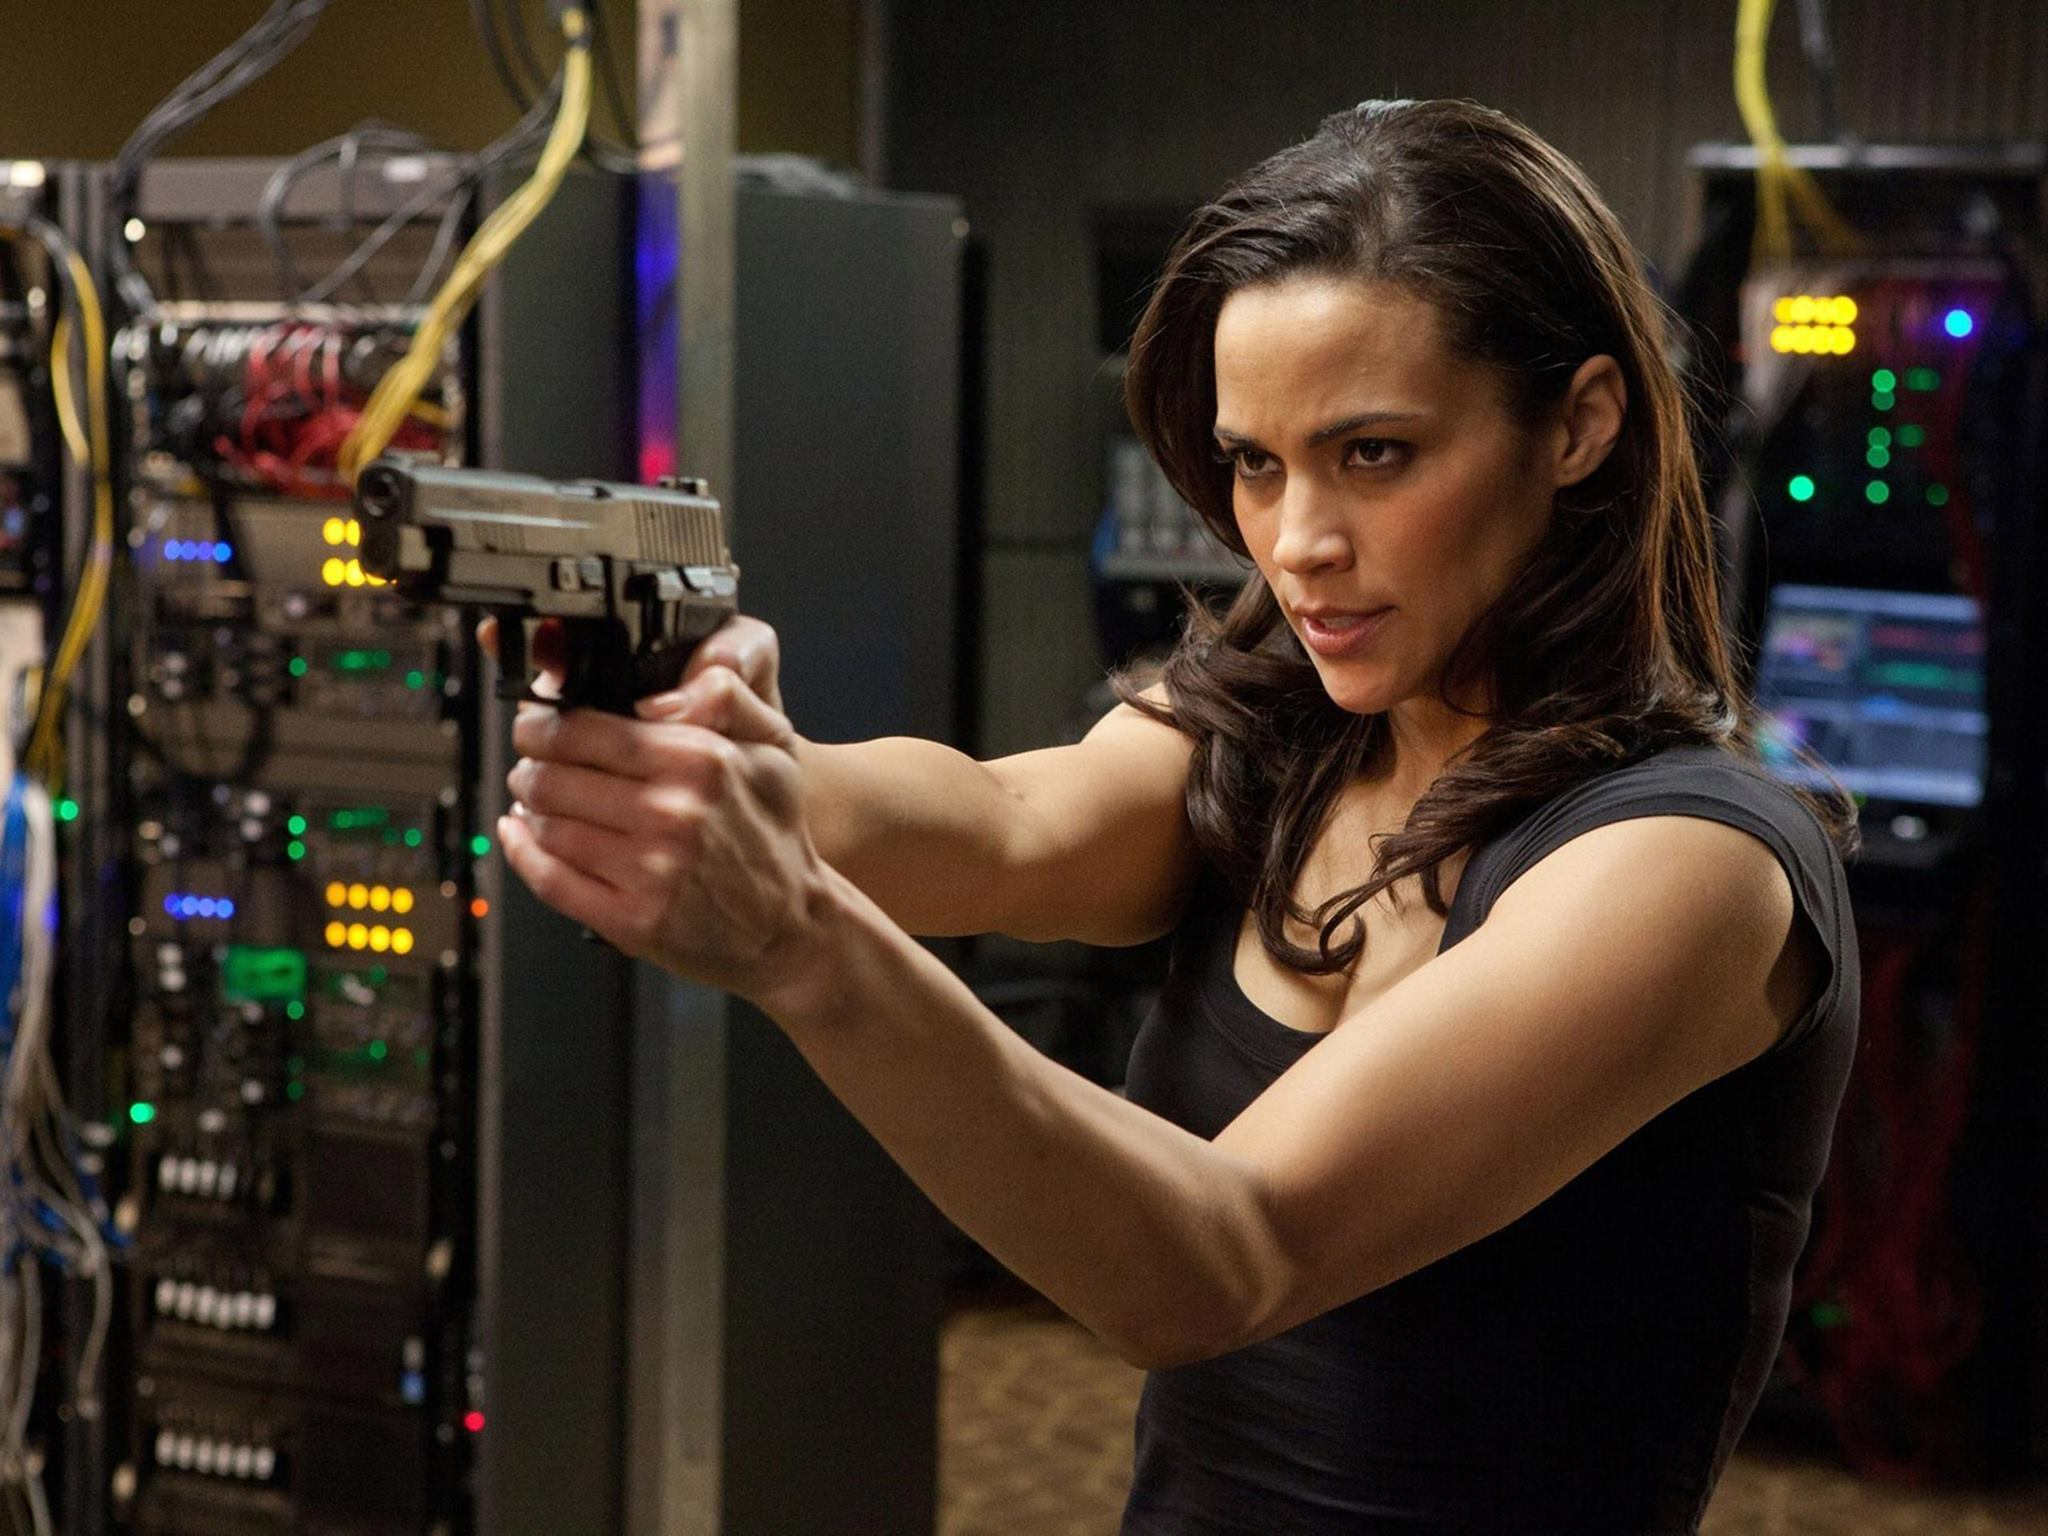 warcraft-film-paula-patton-mission-impossible-4